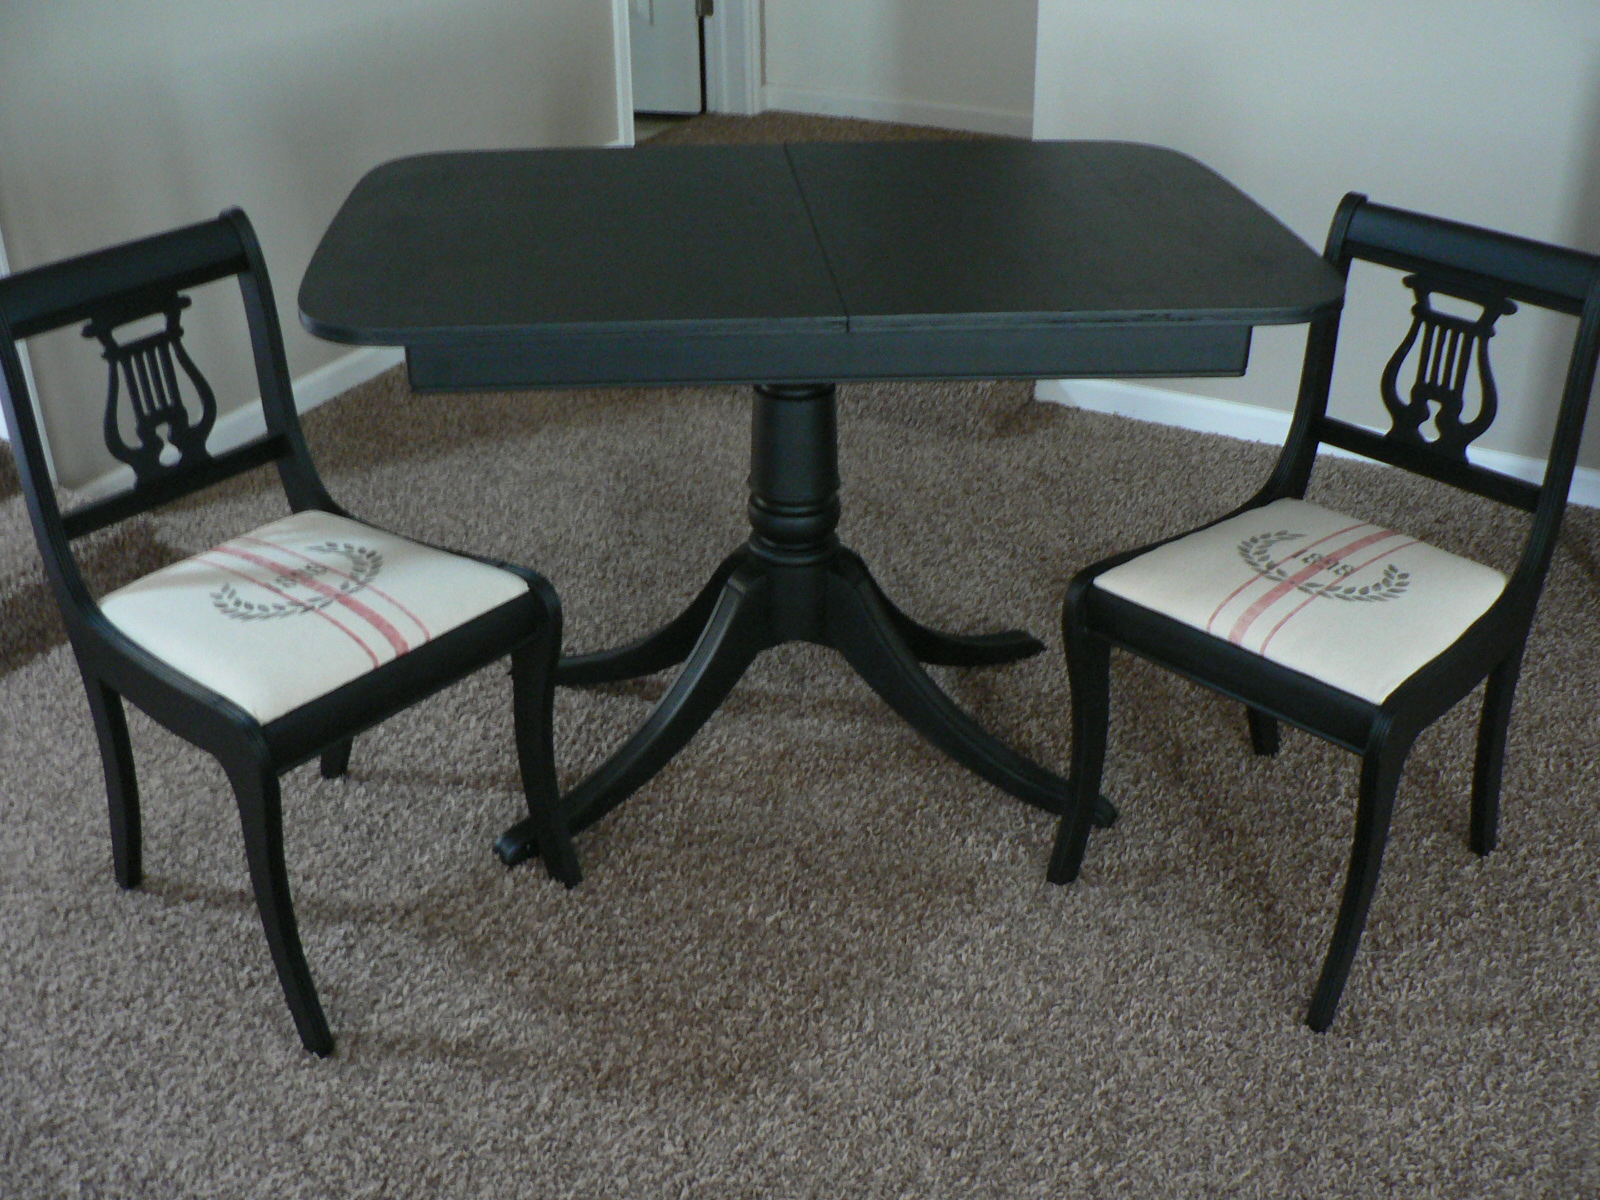 Lyre Back Chairs For The Love Of It Duncan Phyfe Table And Lyre Back Chairs